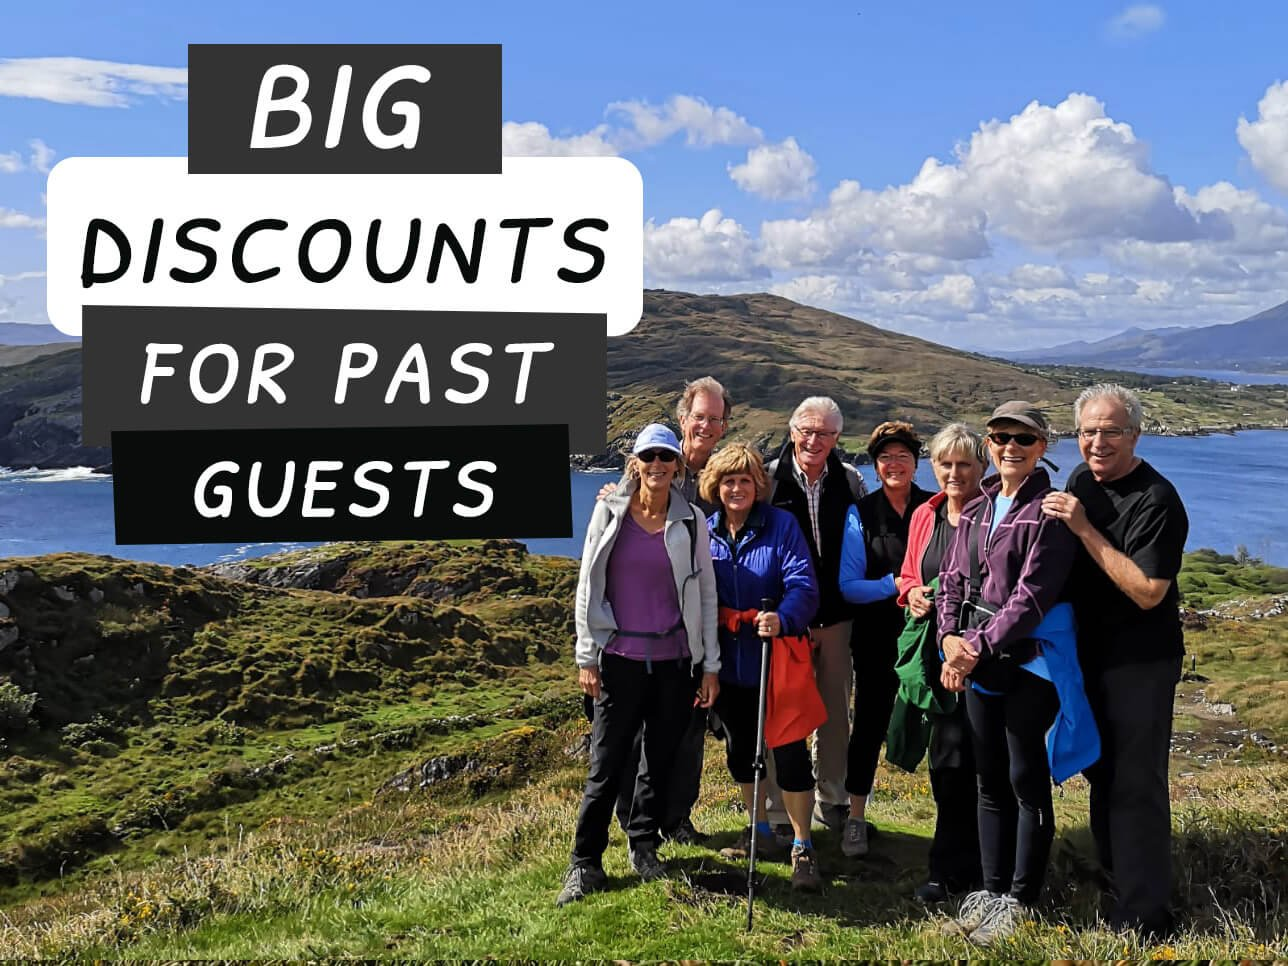 Big discounts for past guests card with group in scenic location in Ireland